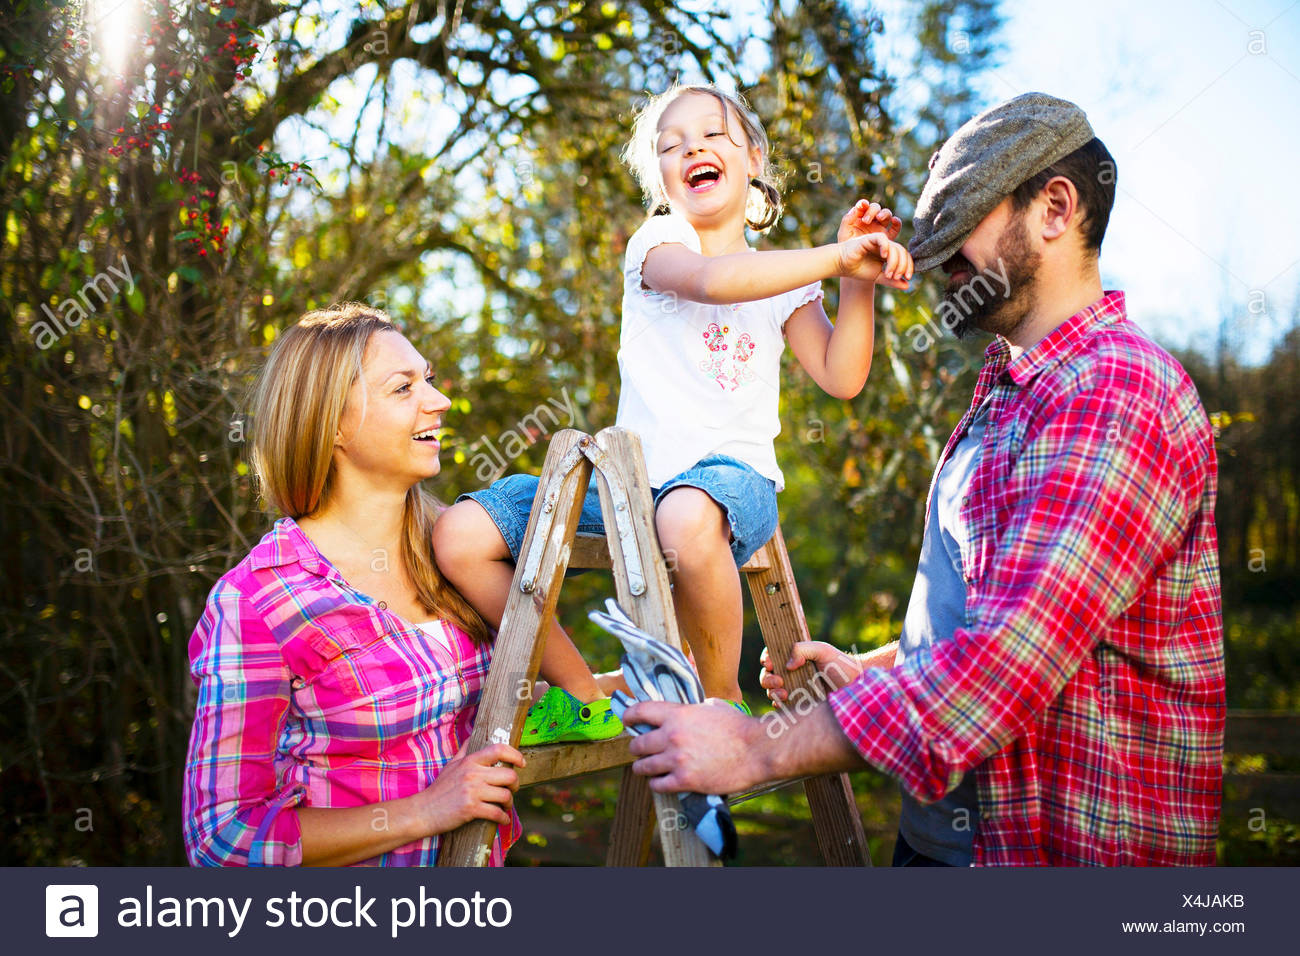 Family having fun in the garden, Munich, Bavaria, Germany - Stock Image